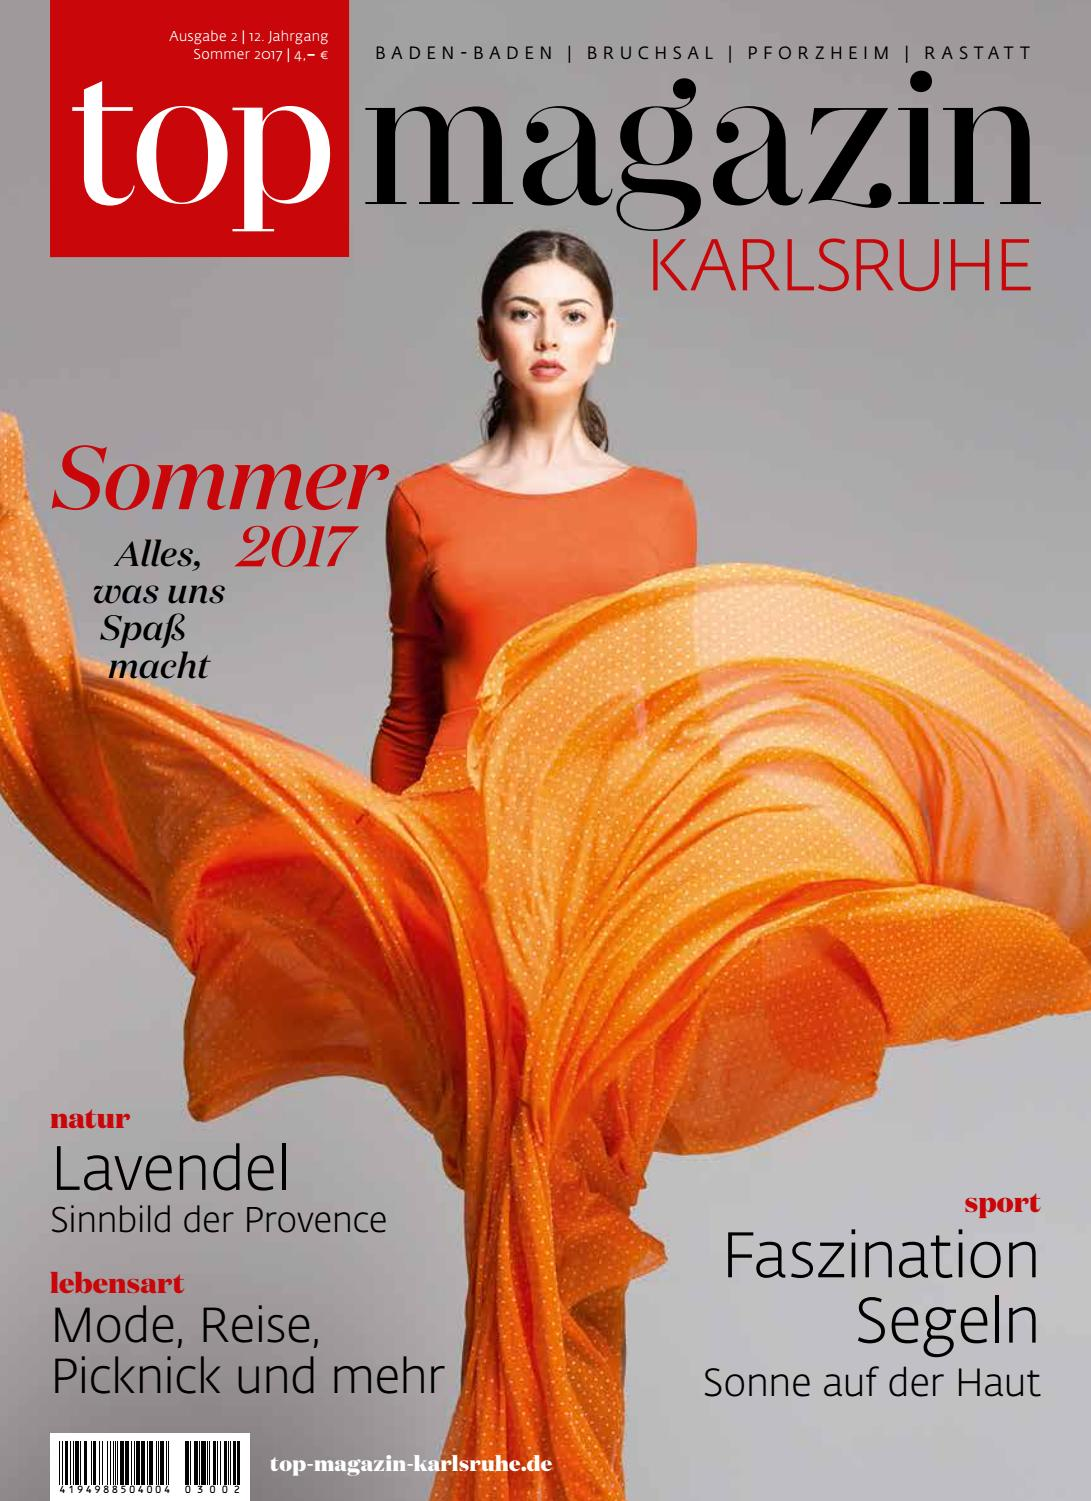 Top Magazin Karlsruhe Sommer 2017 by Top Magazin - issuu